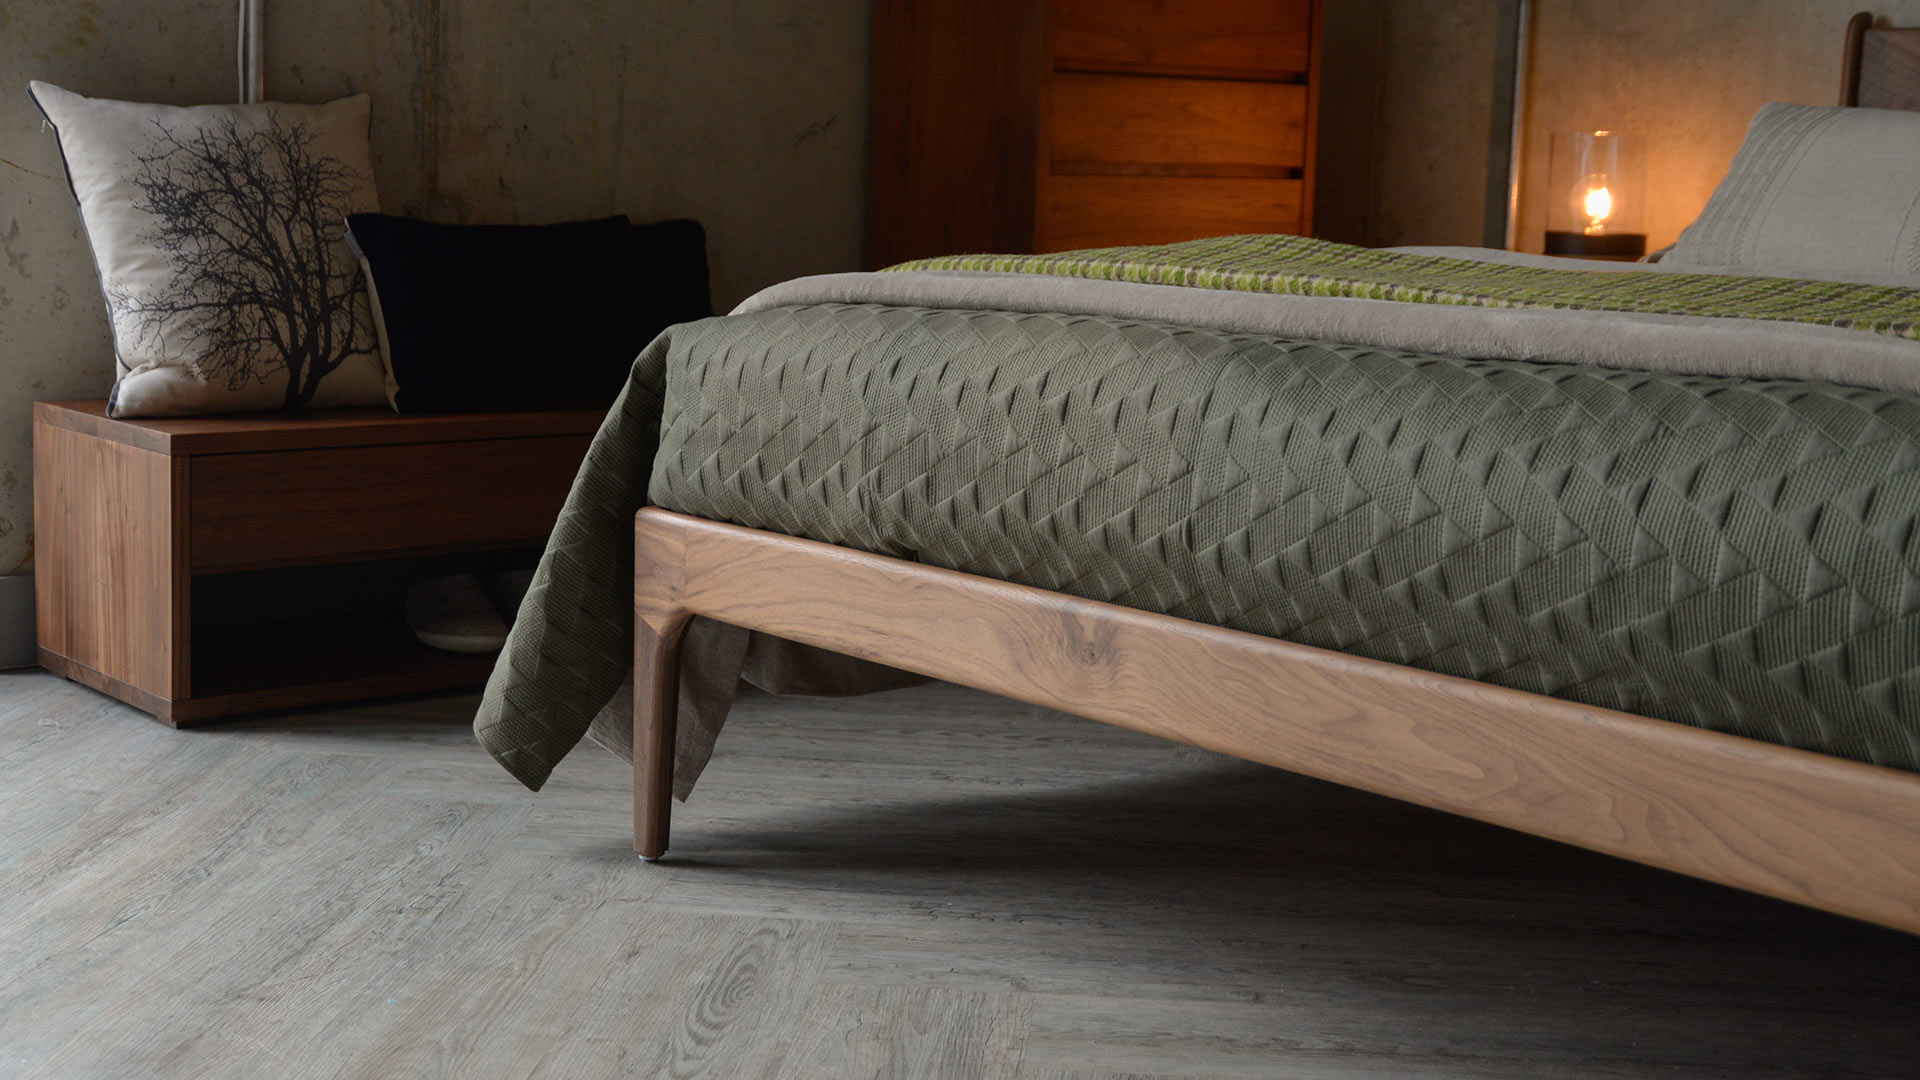 A closer view of the wooden Hoxton Bed leg made from Walnut wood.